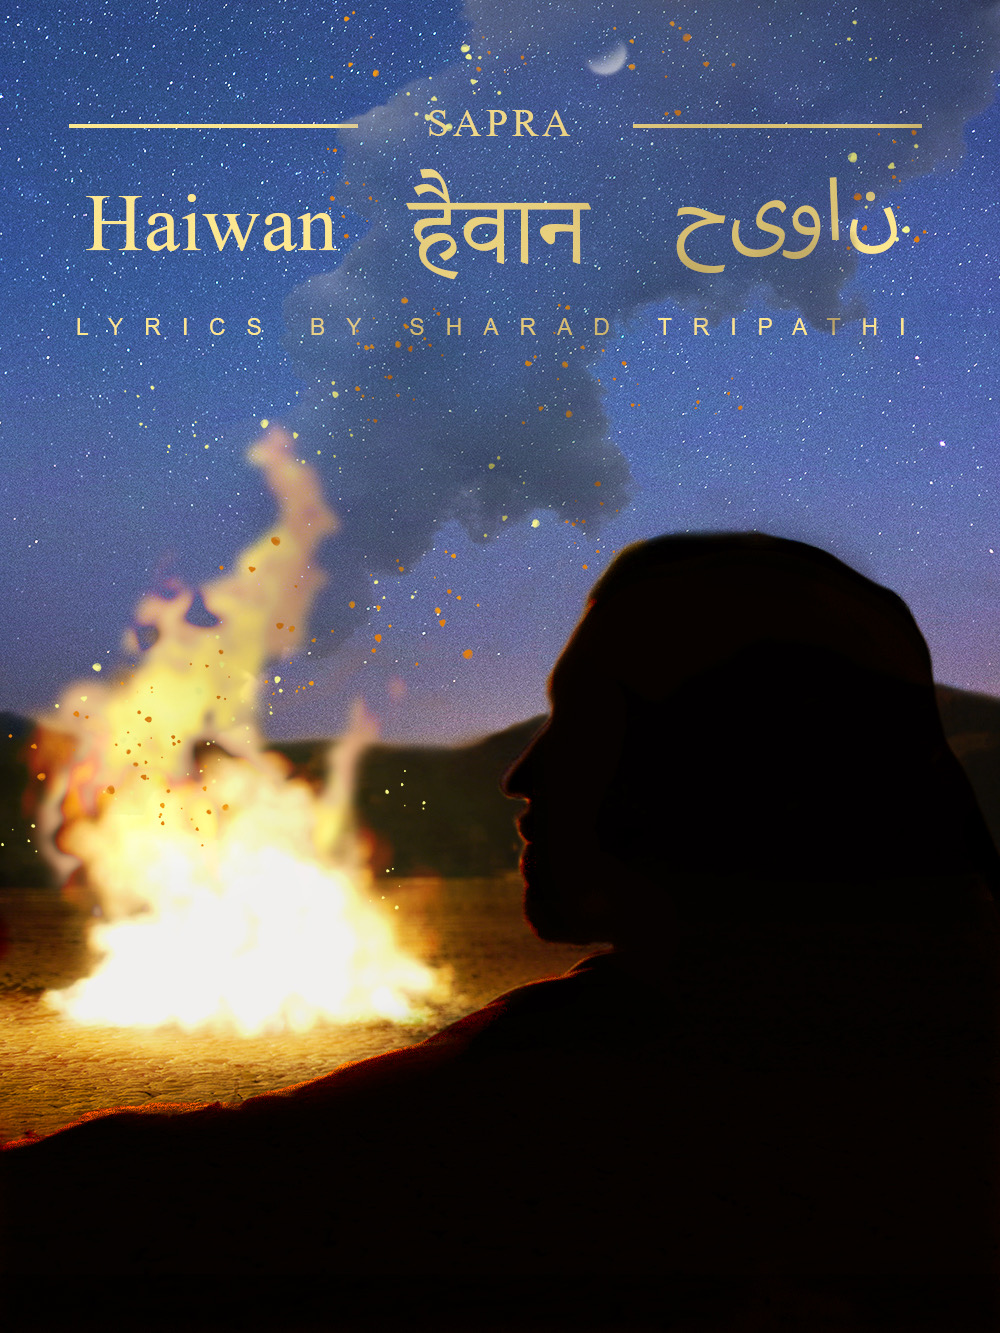 Haiwan - New Single From Sapra Cover